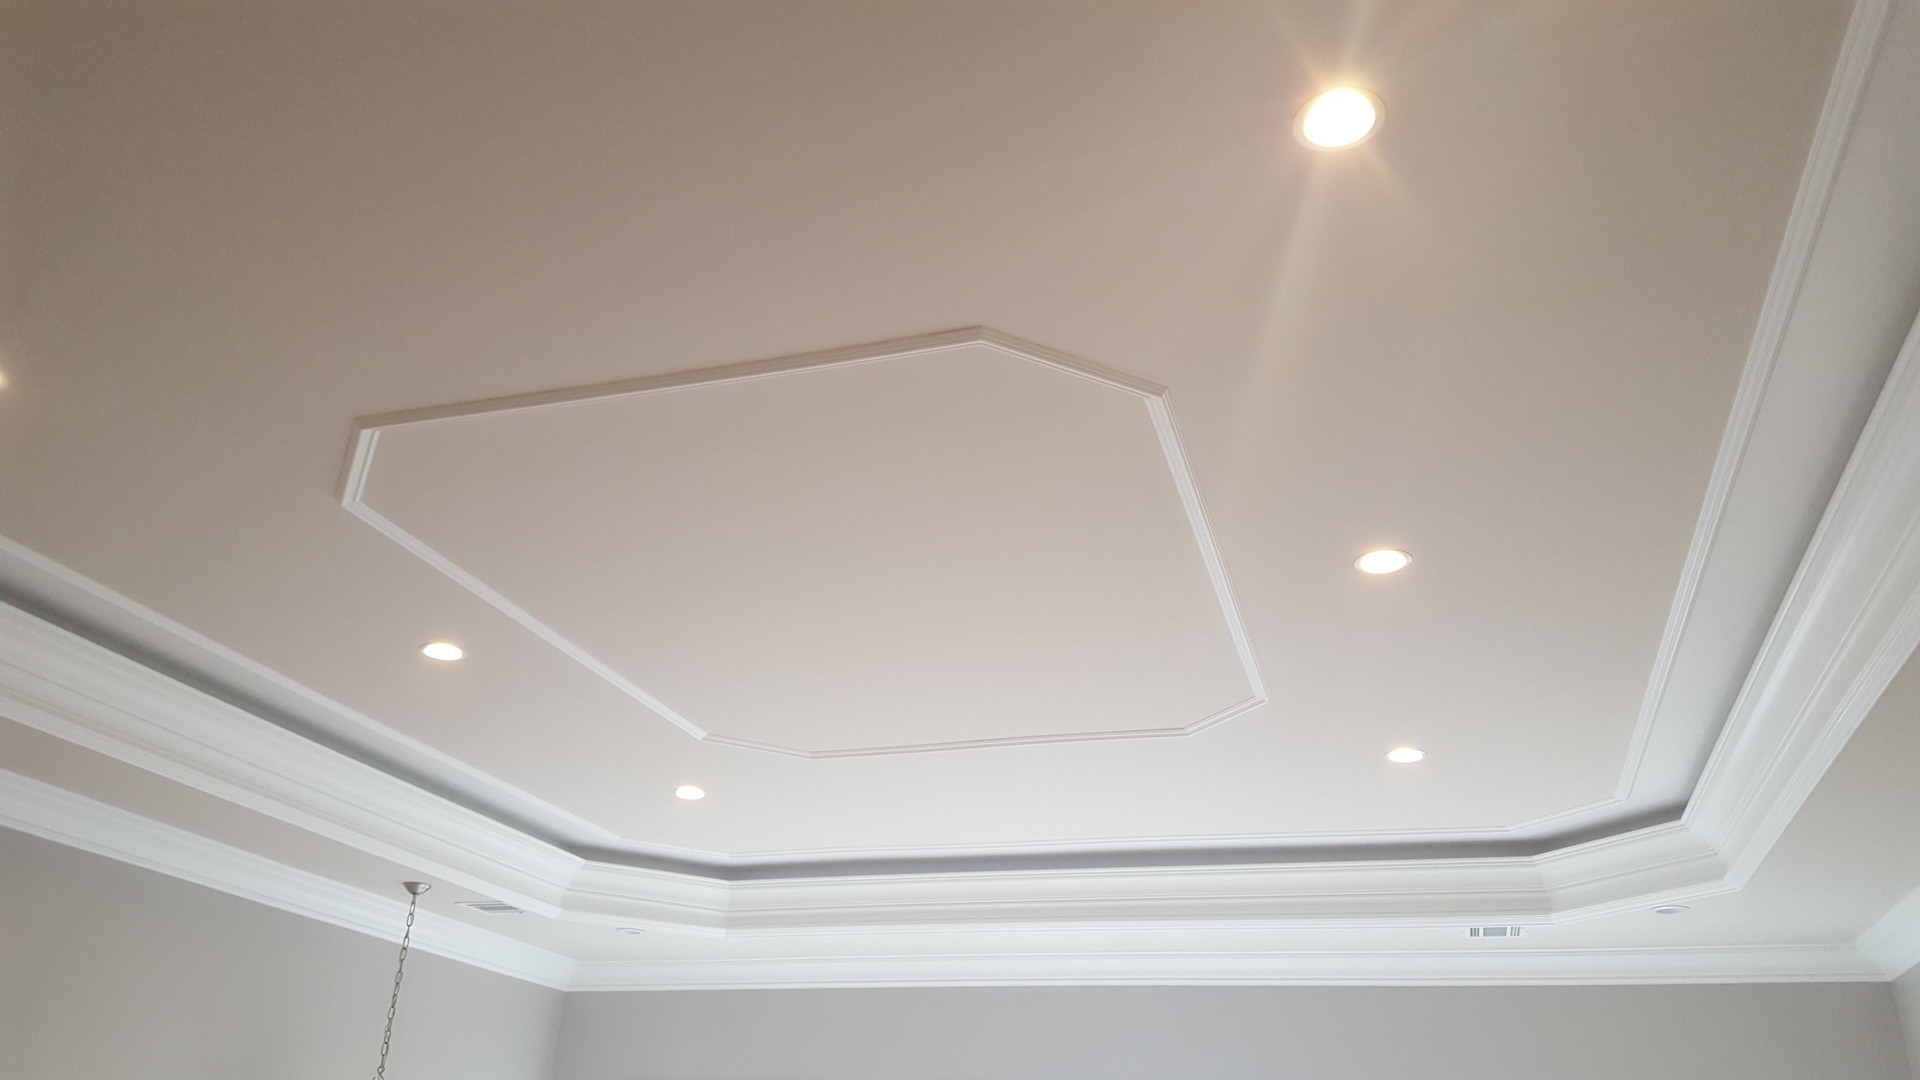 CEILING & COWNMOULDINGS PAINTED